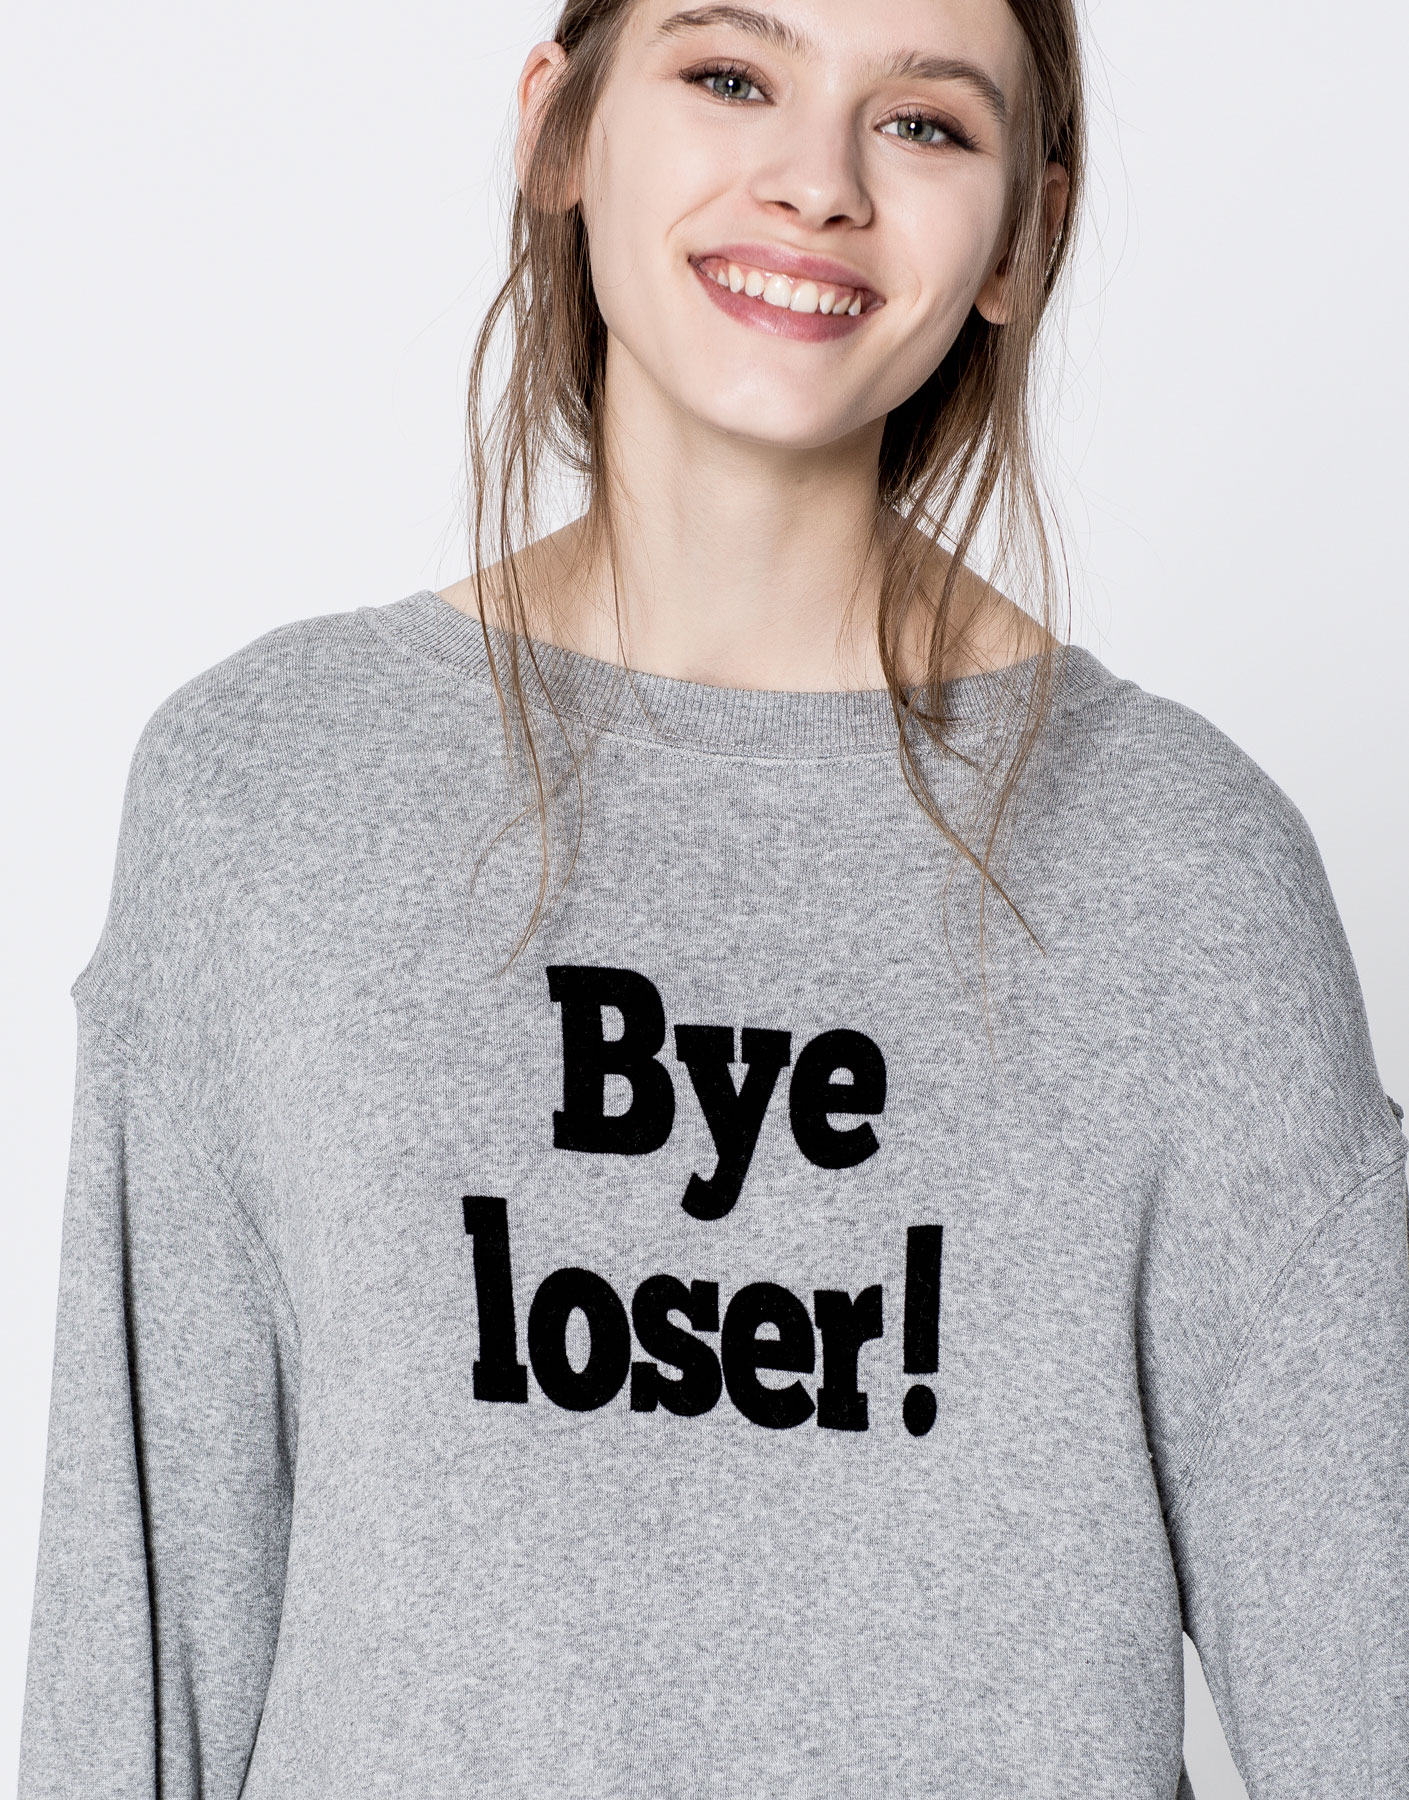 Bye Loser text sweatshirt